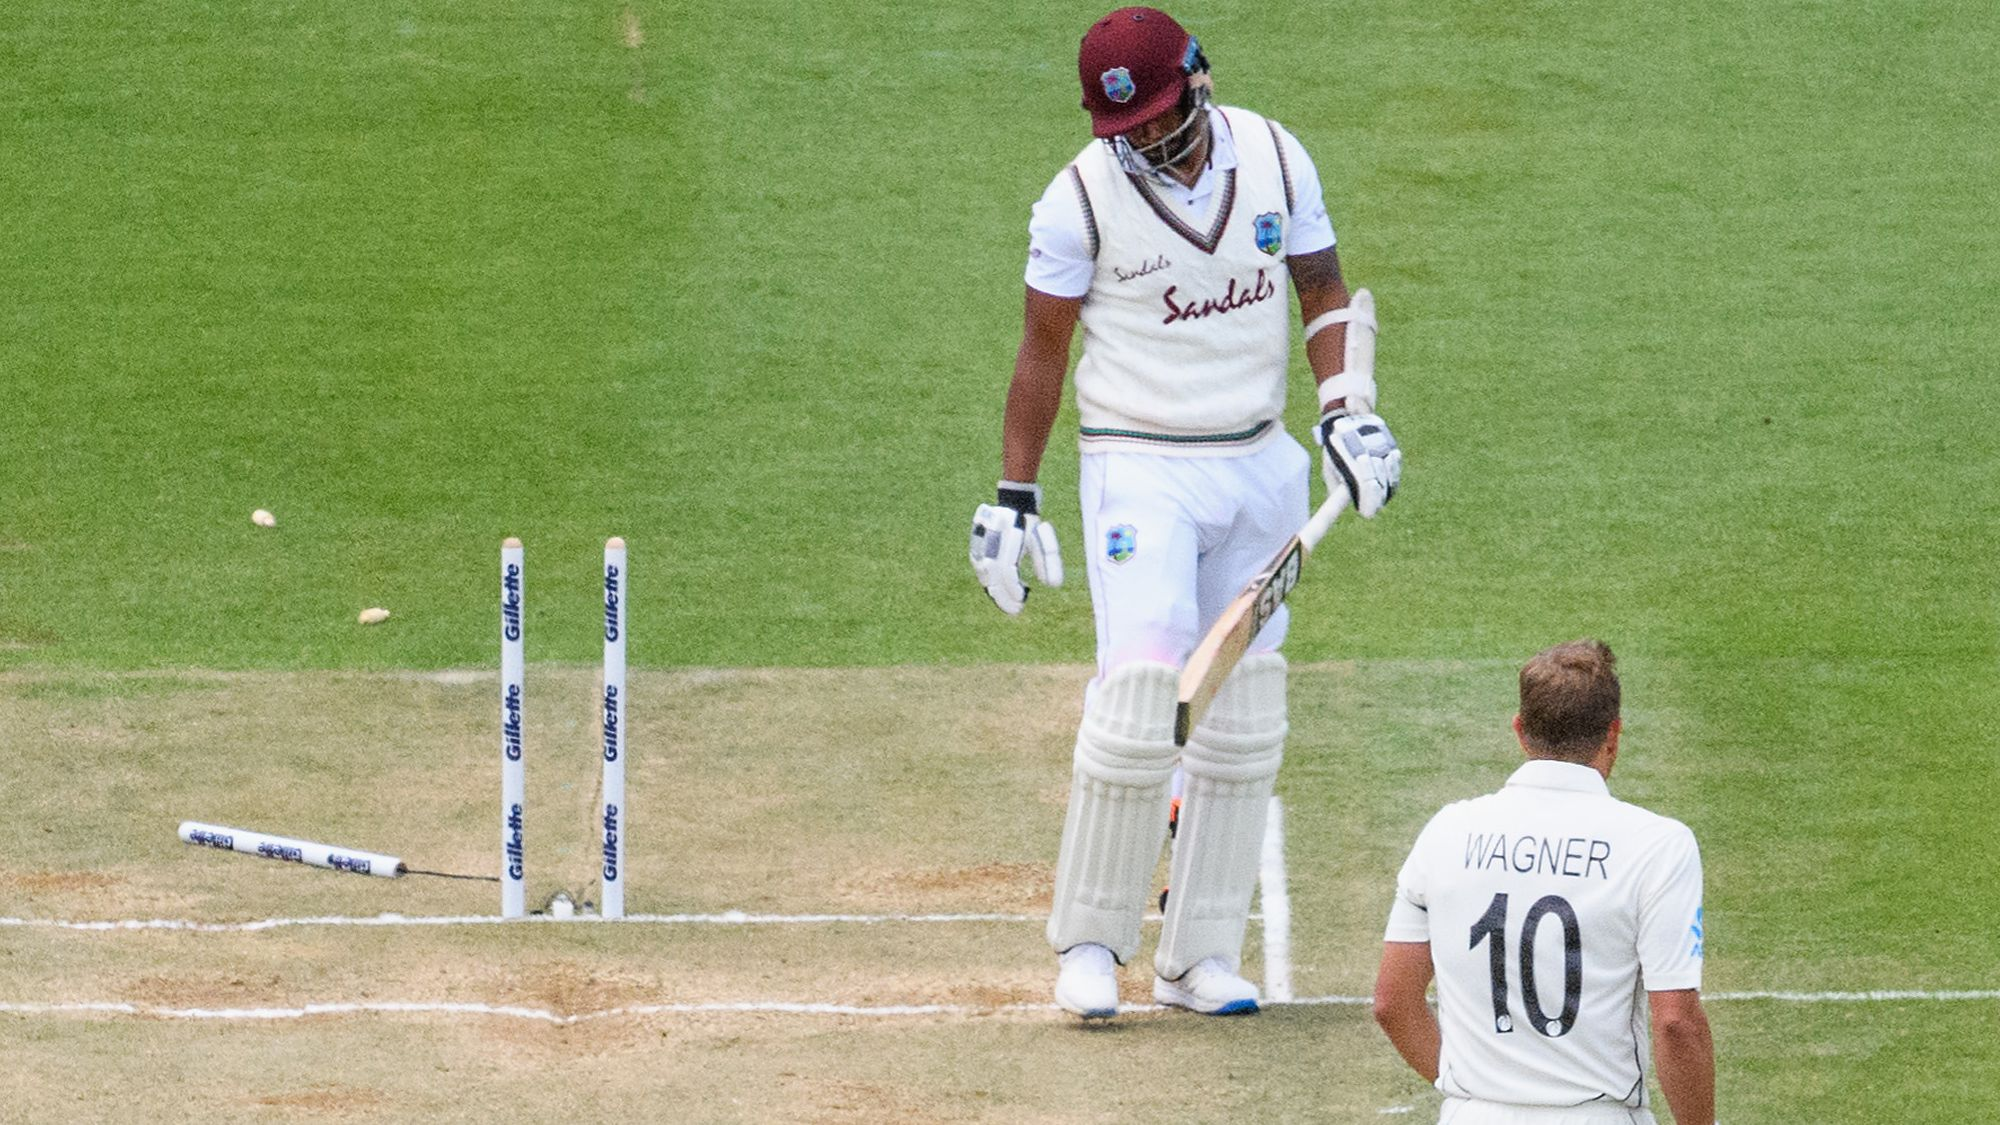 New Zealand thrash West Indies by an innings and 134 runs in the first cricket Test in Hamilton